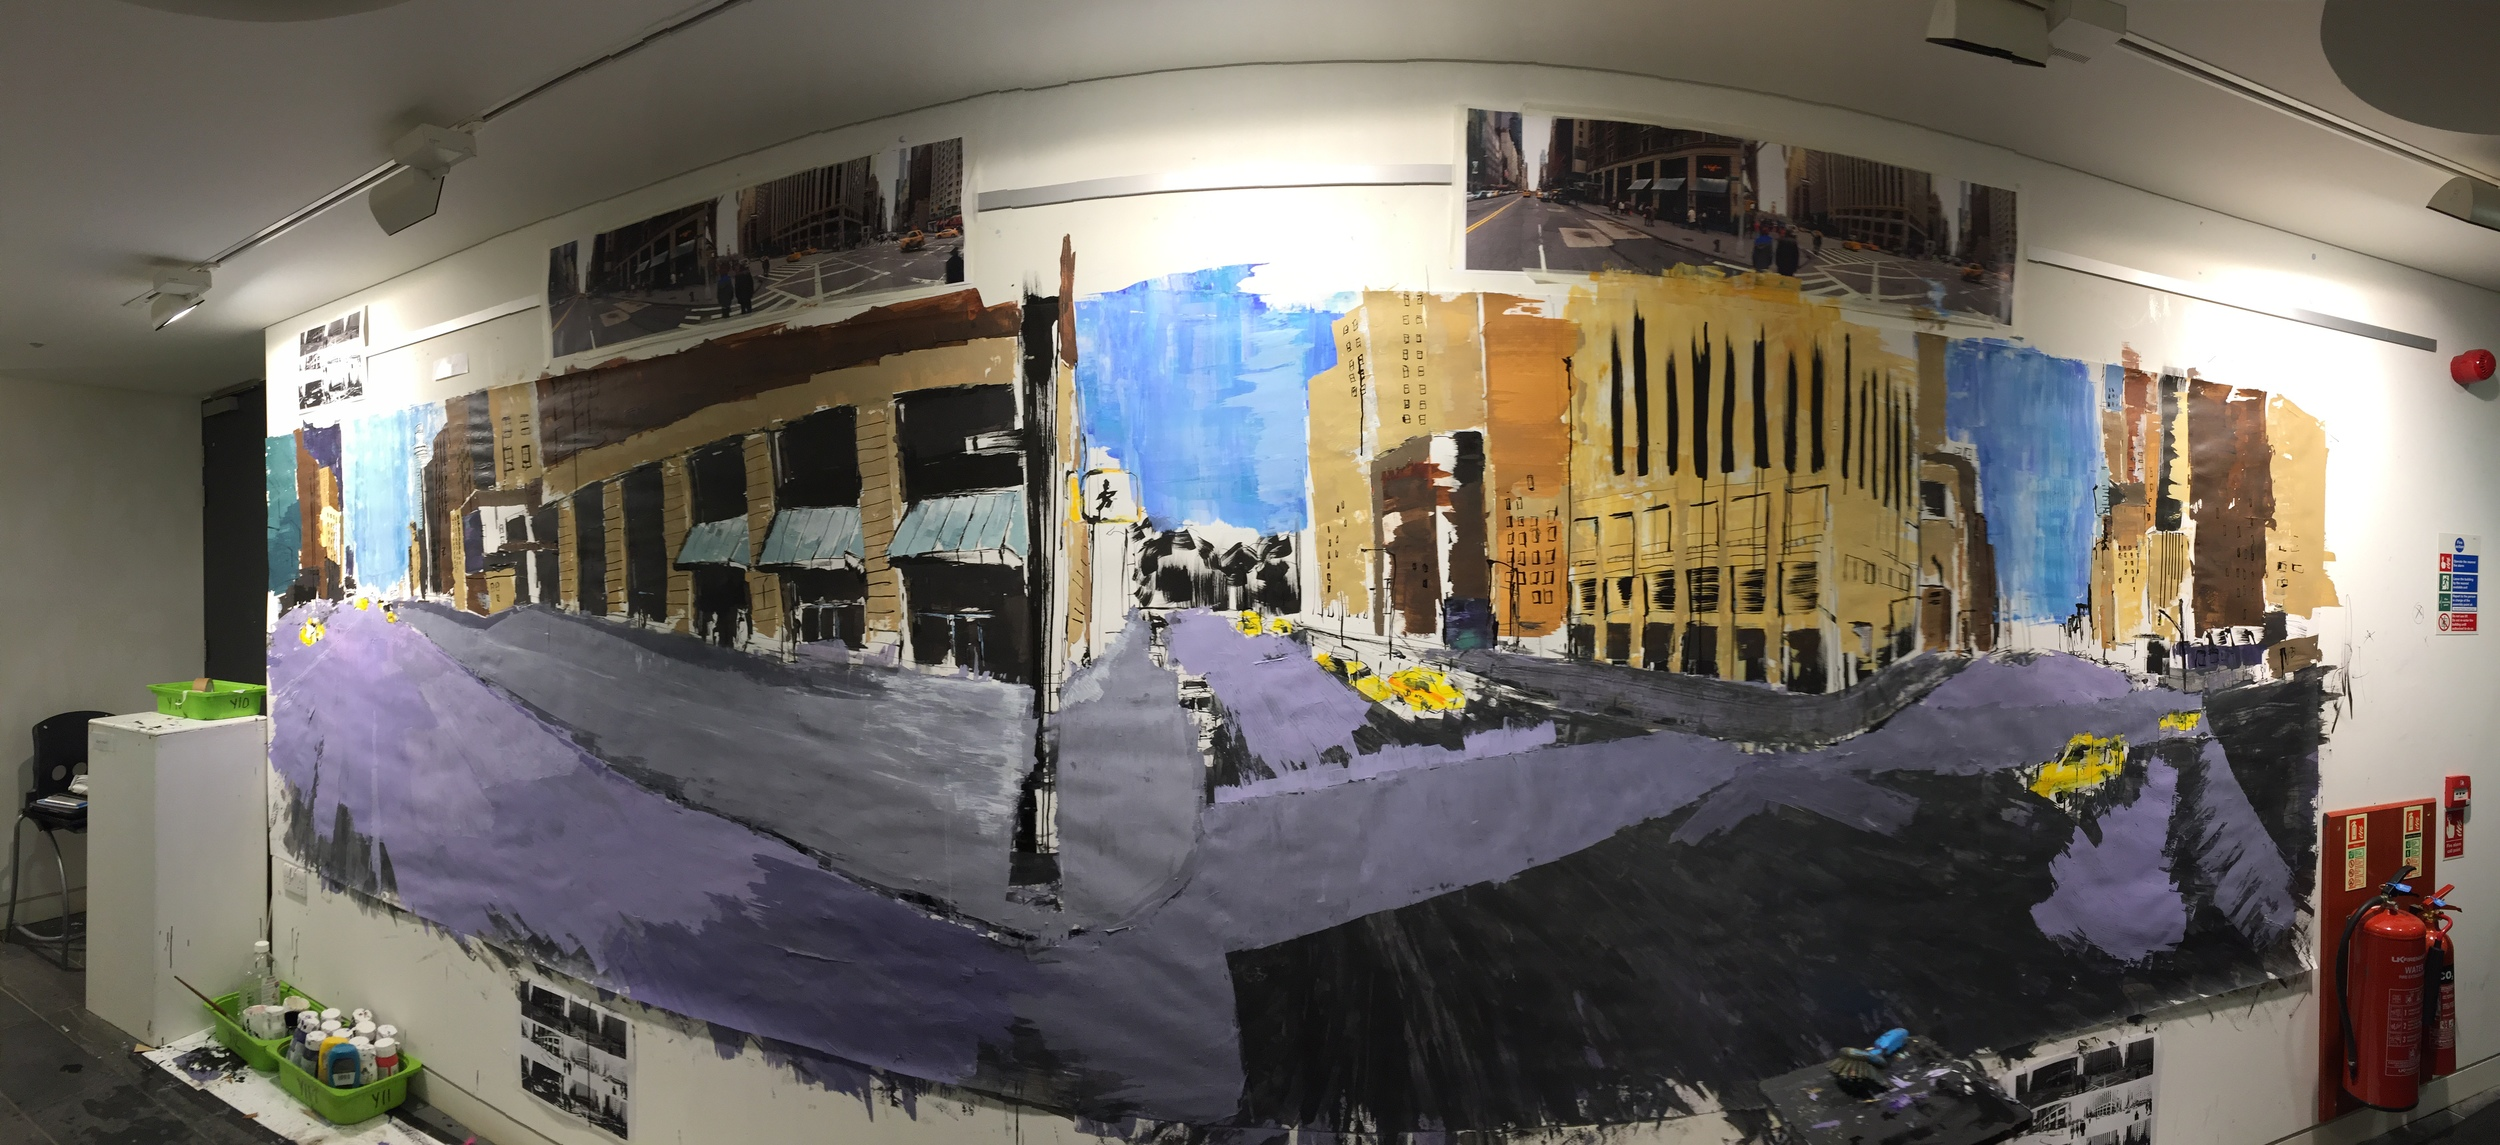 Starting to repaint the road area in block sections. The dark grey still visible on the right hand section of the piece. Click to enlarge.